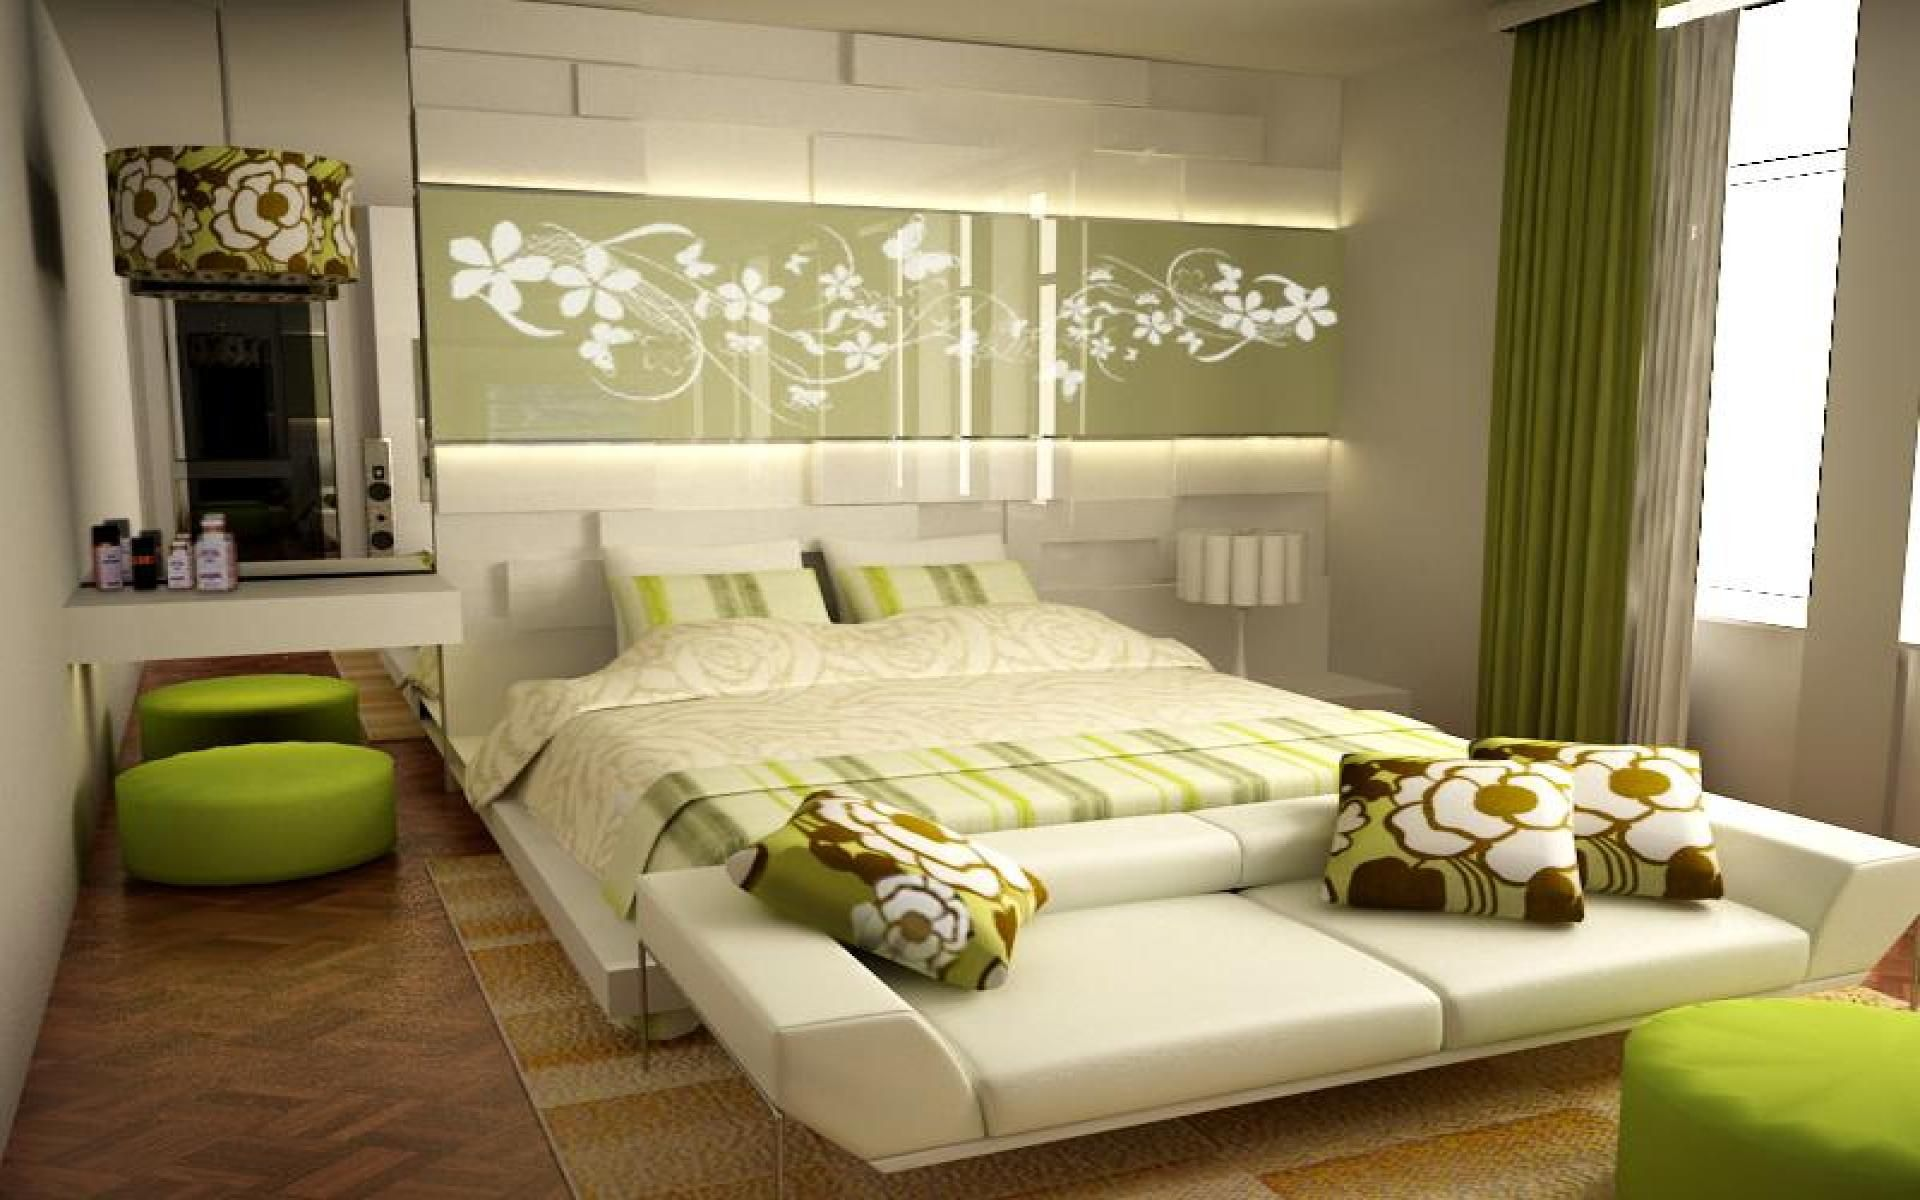 Decorative Master Bedroom Flower Wall Art Ideas | Bedrooms ...